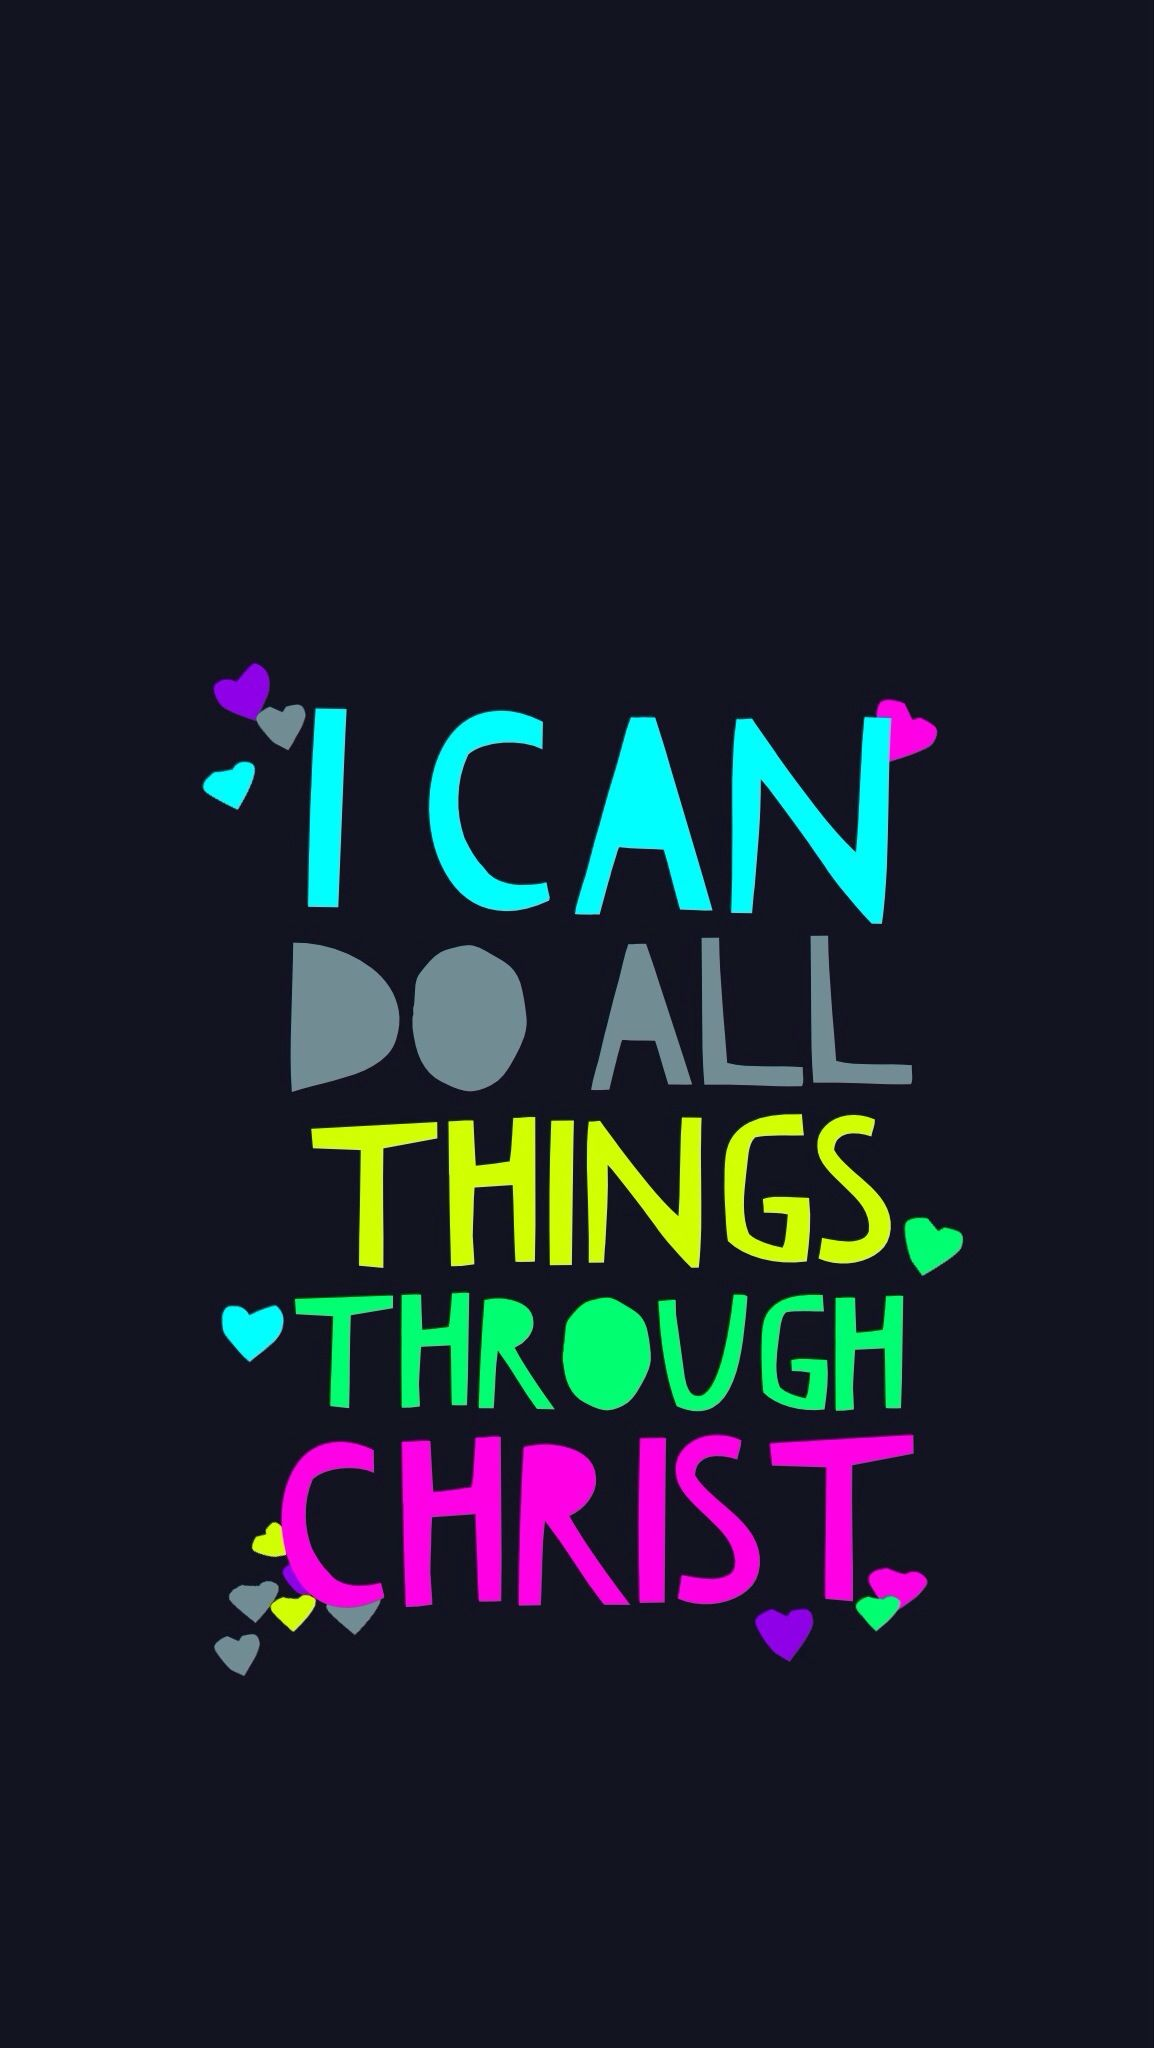 Hd wallpaper quotes for android - Philippians 4 13 Iphone 5 Wallpaper